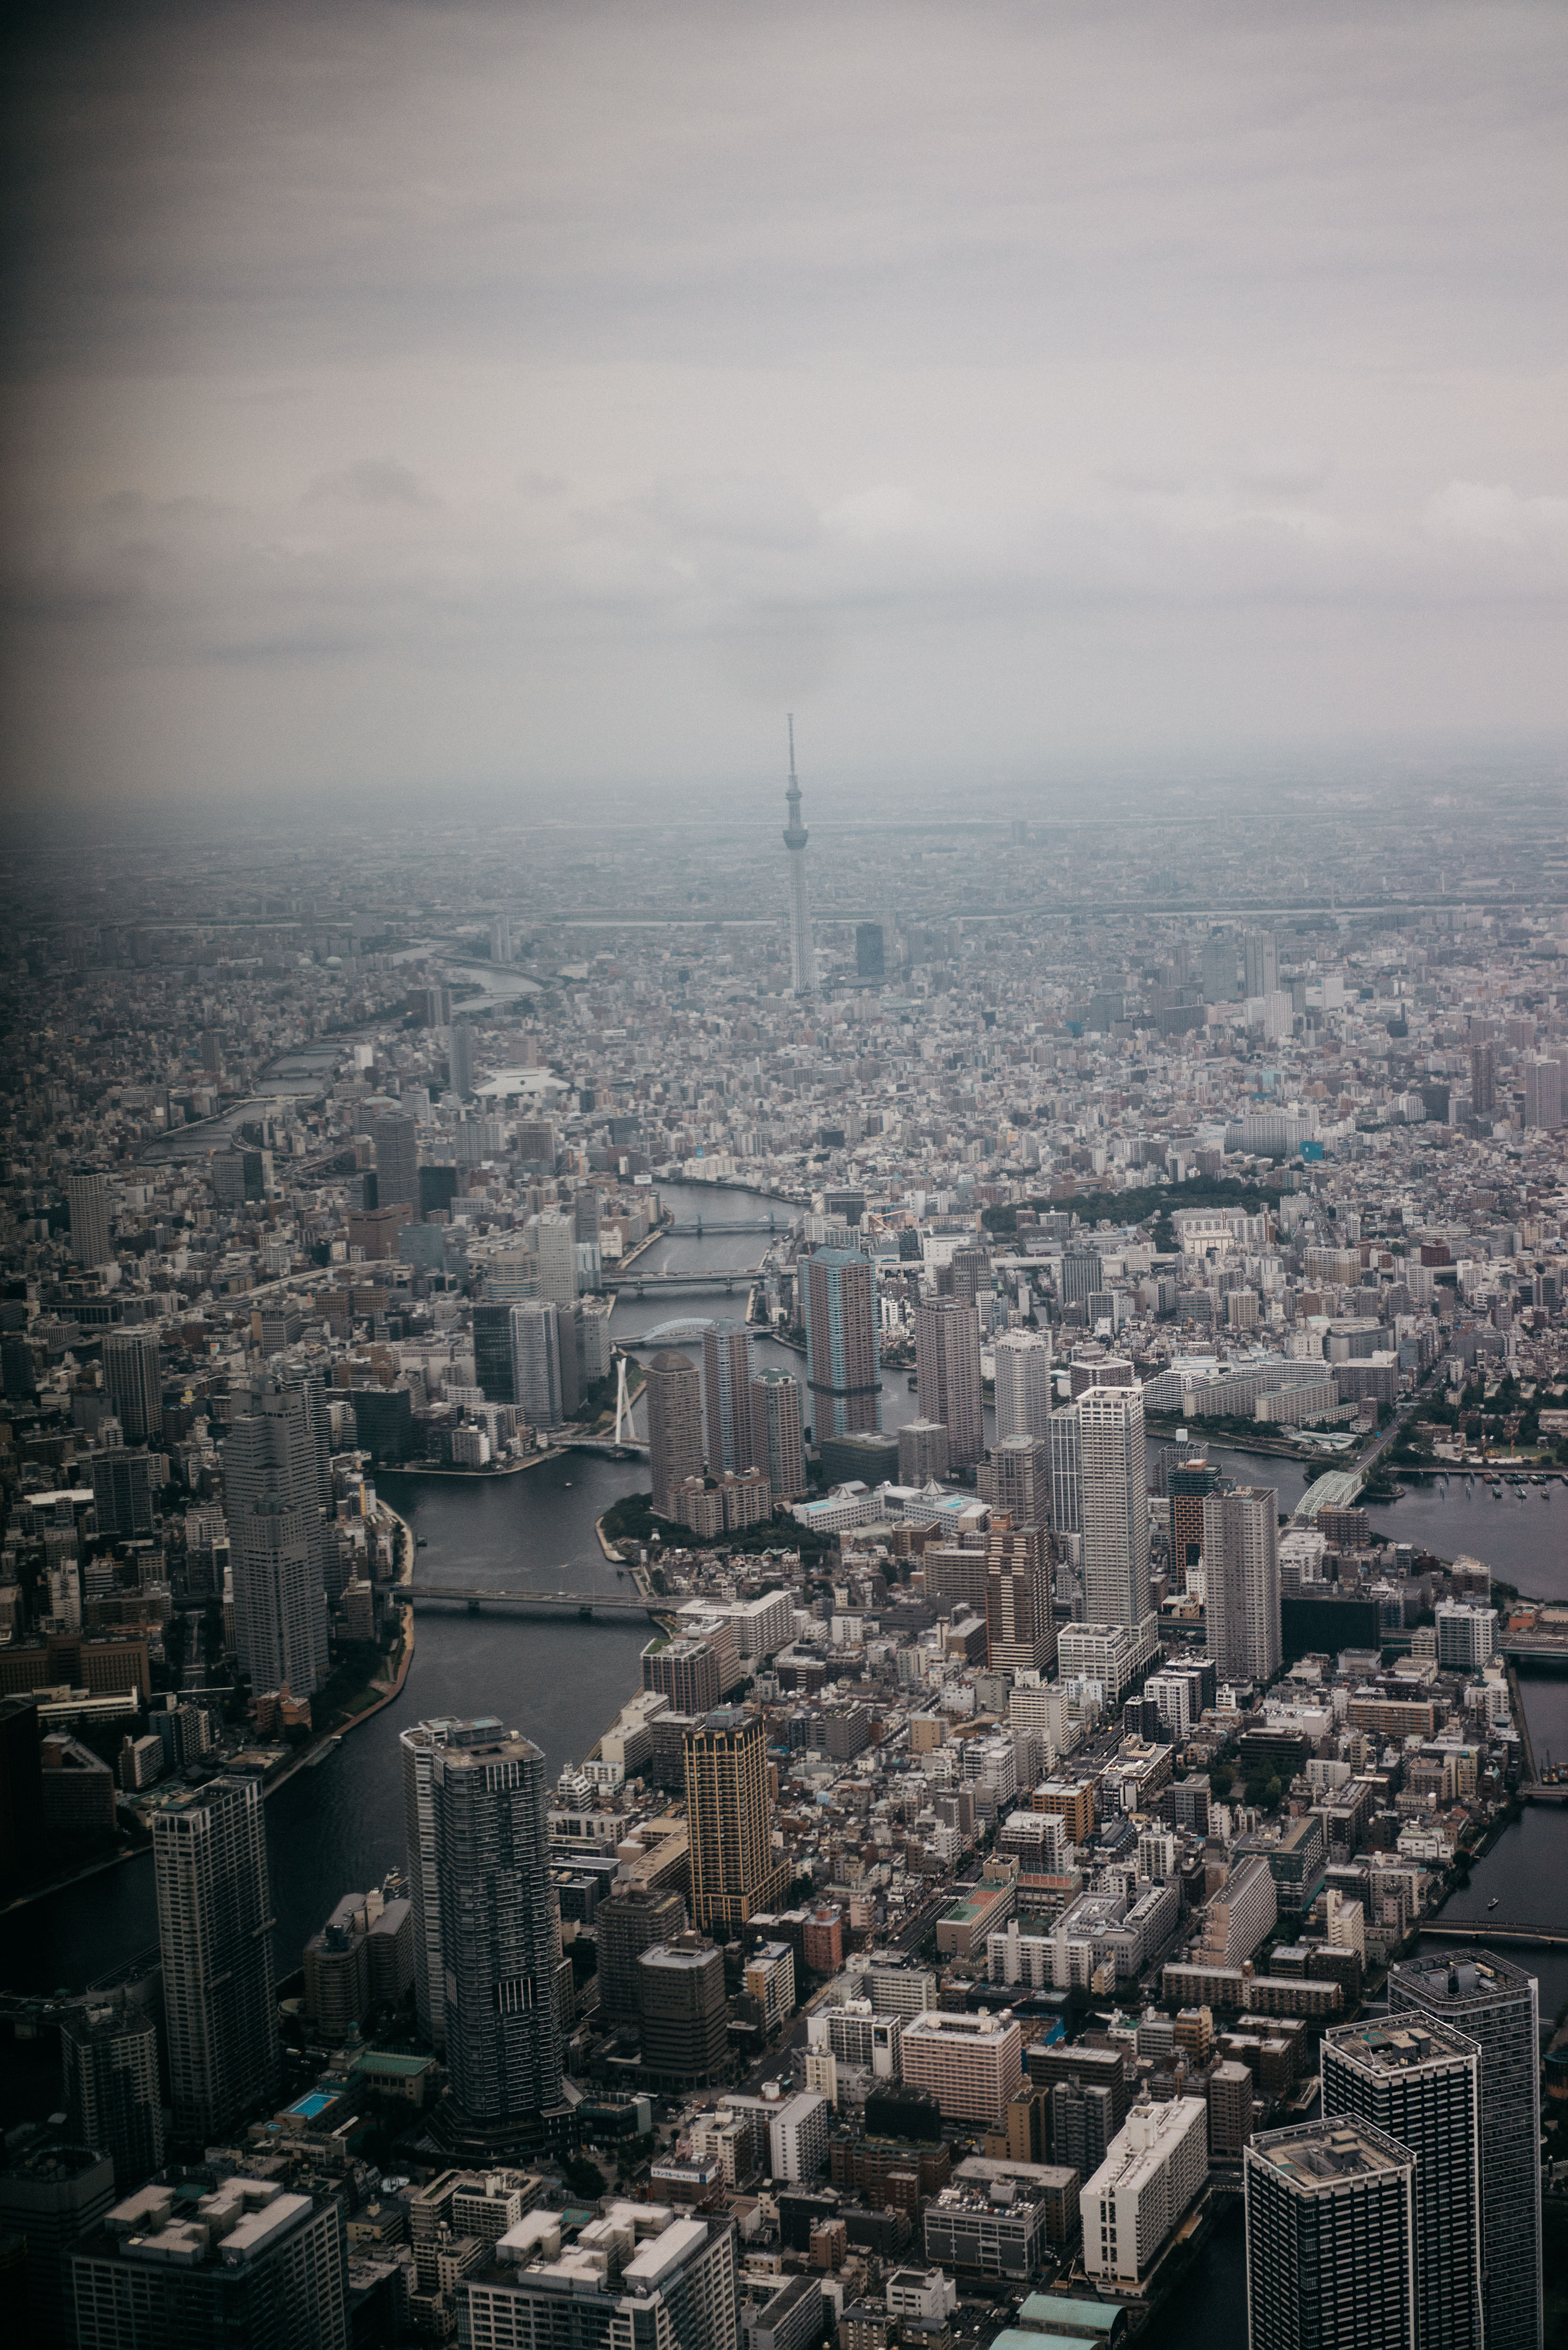 Tokyo Skyline | Japan metropolitan | Helicopter drive | view from above